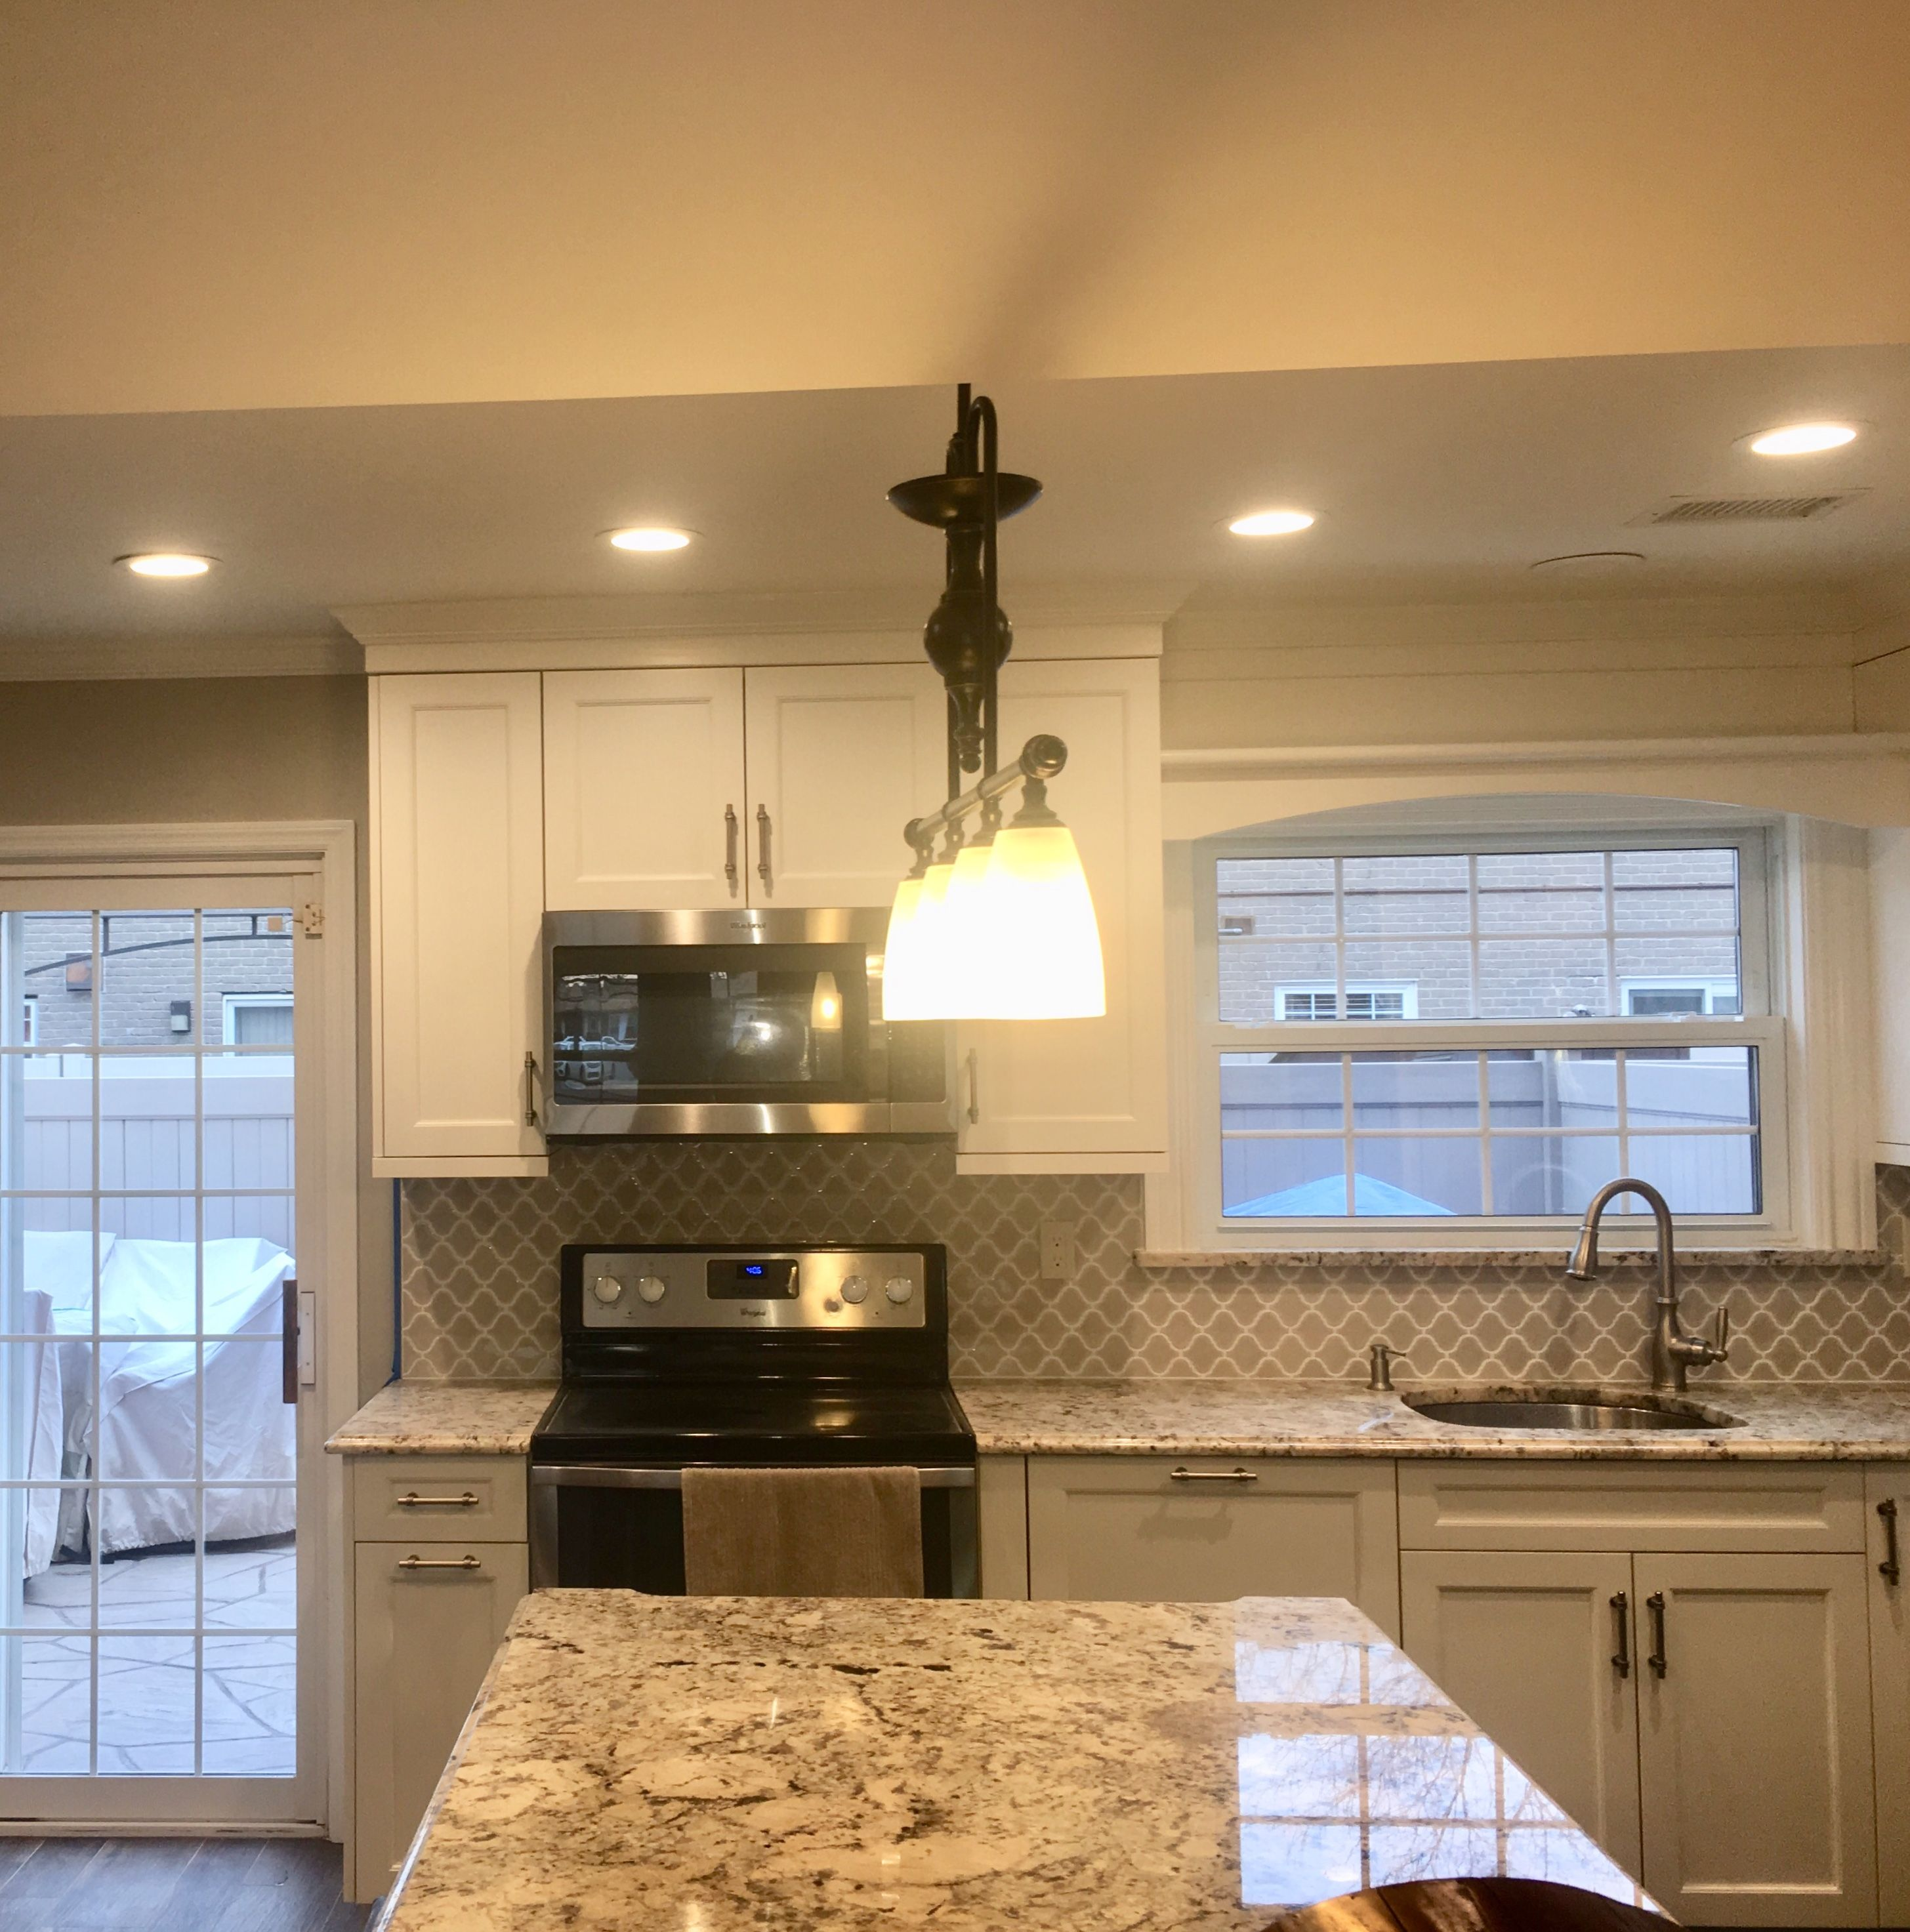 Walls Regal Select Eggshell Hc 172 Revere Pewter Stain Old Masters Espresso Ceiling Regal Flat Custom Color To Beautiful Kitchens Cabinet Trim Kitchen